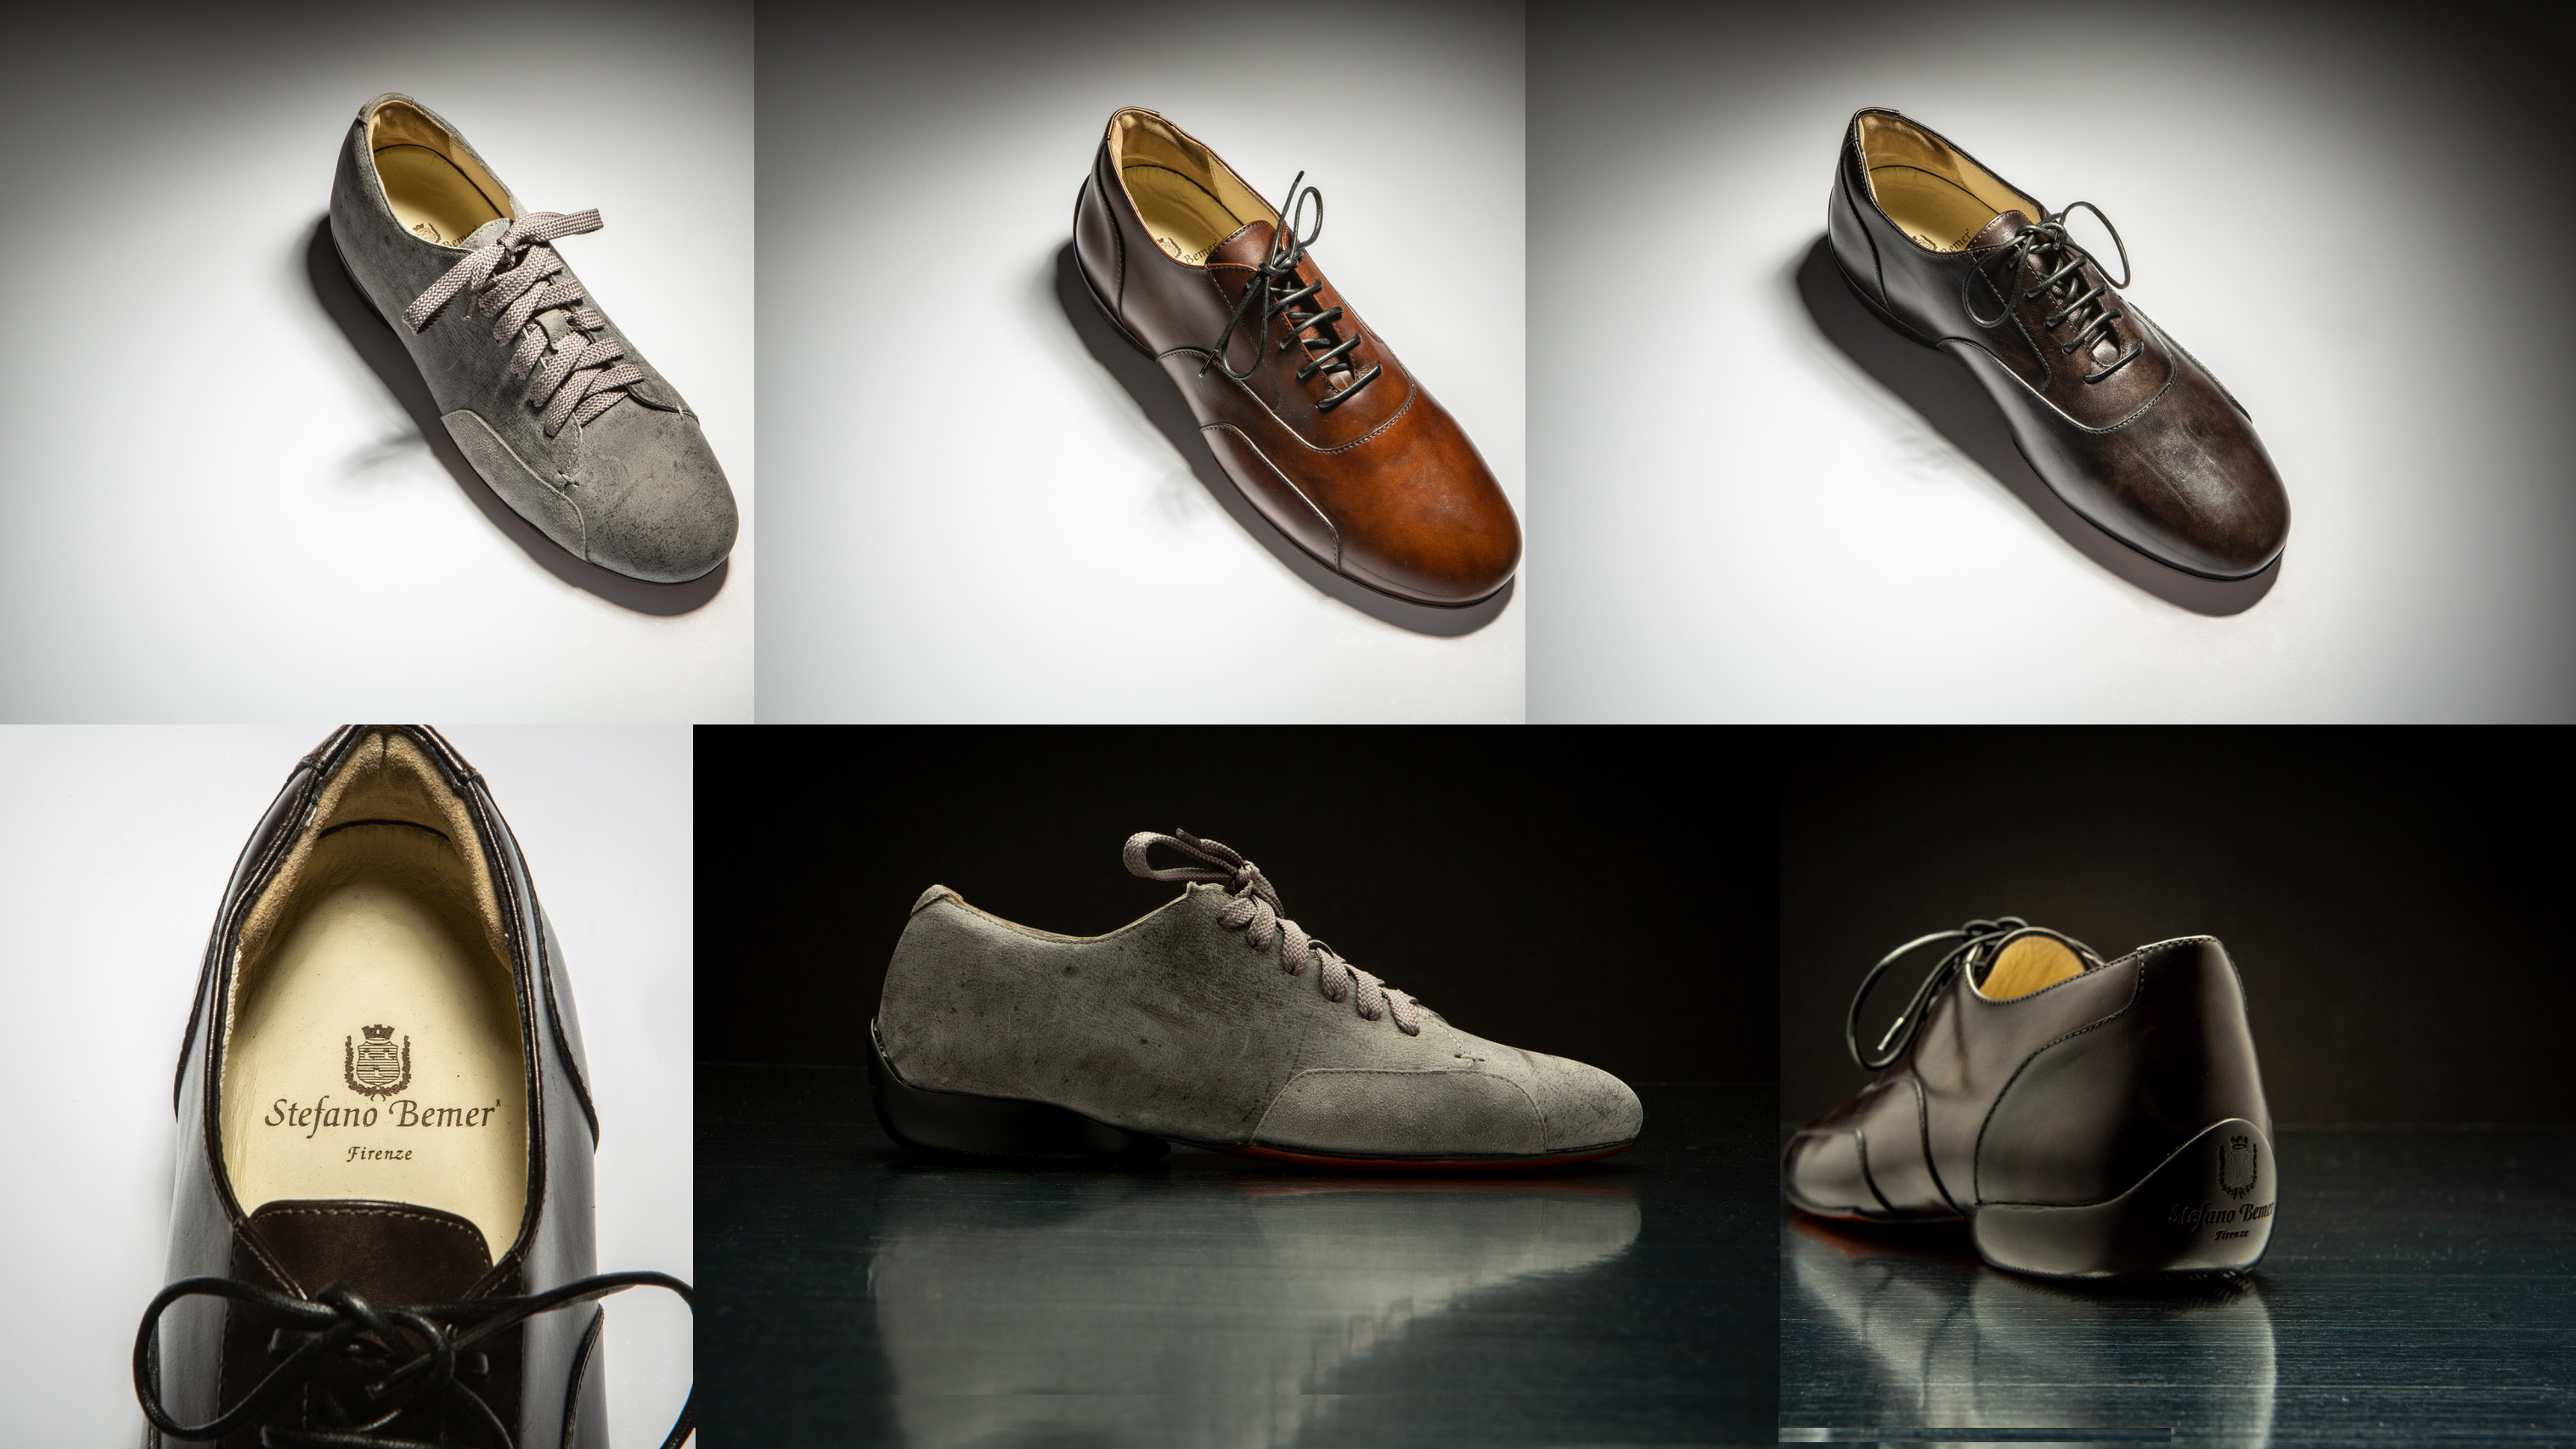 f27269decc62 Driving Meets Elegance and Comfort with these New Driving Shoes from  Stefano Bemer